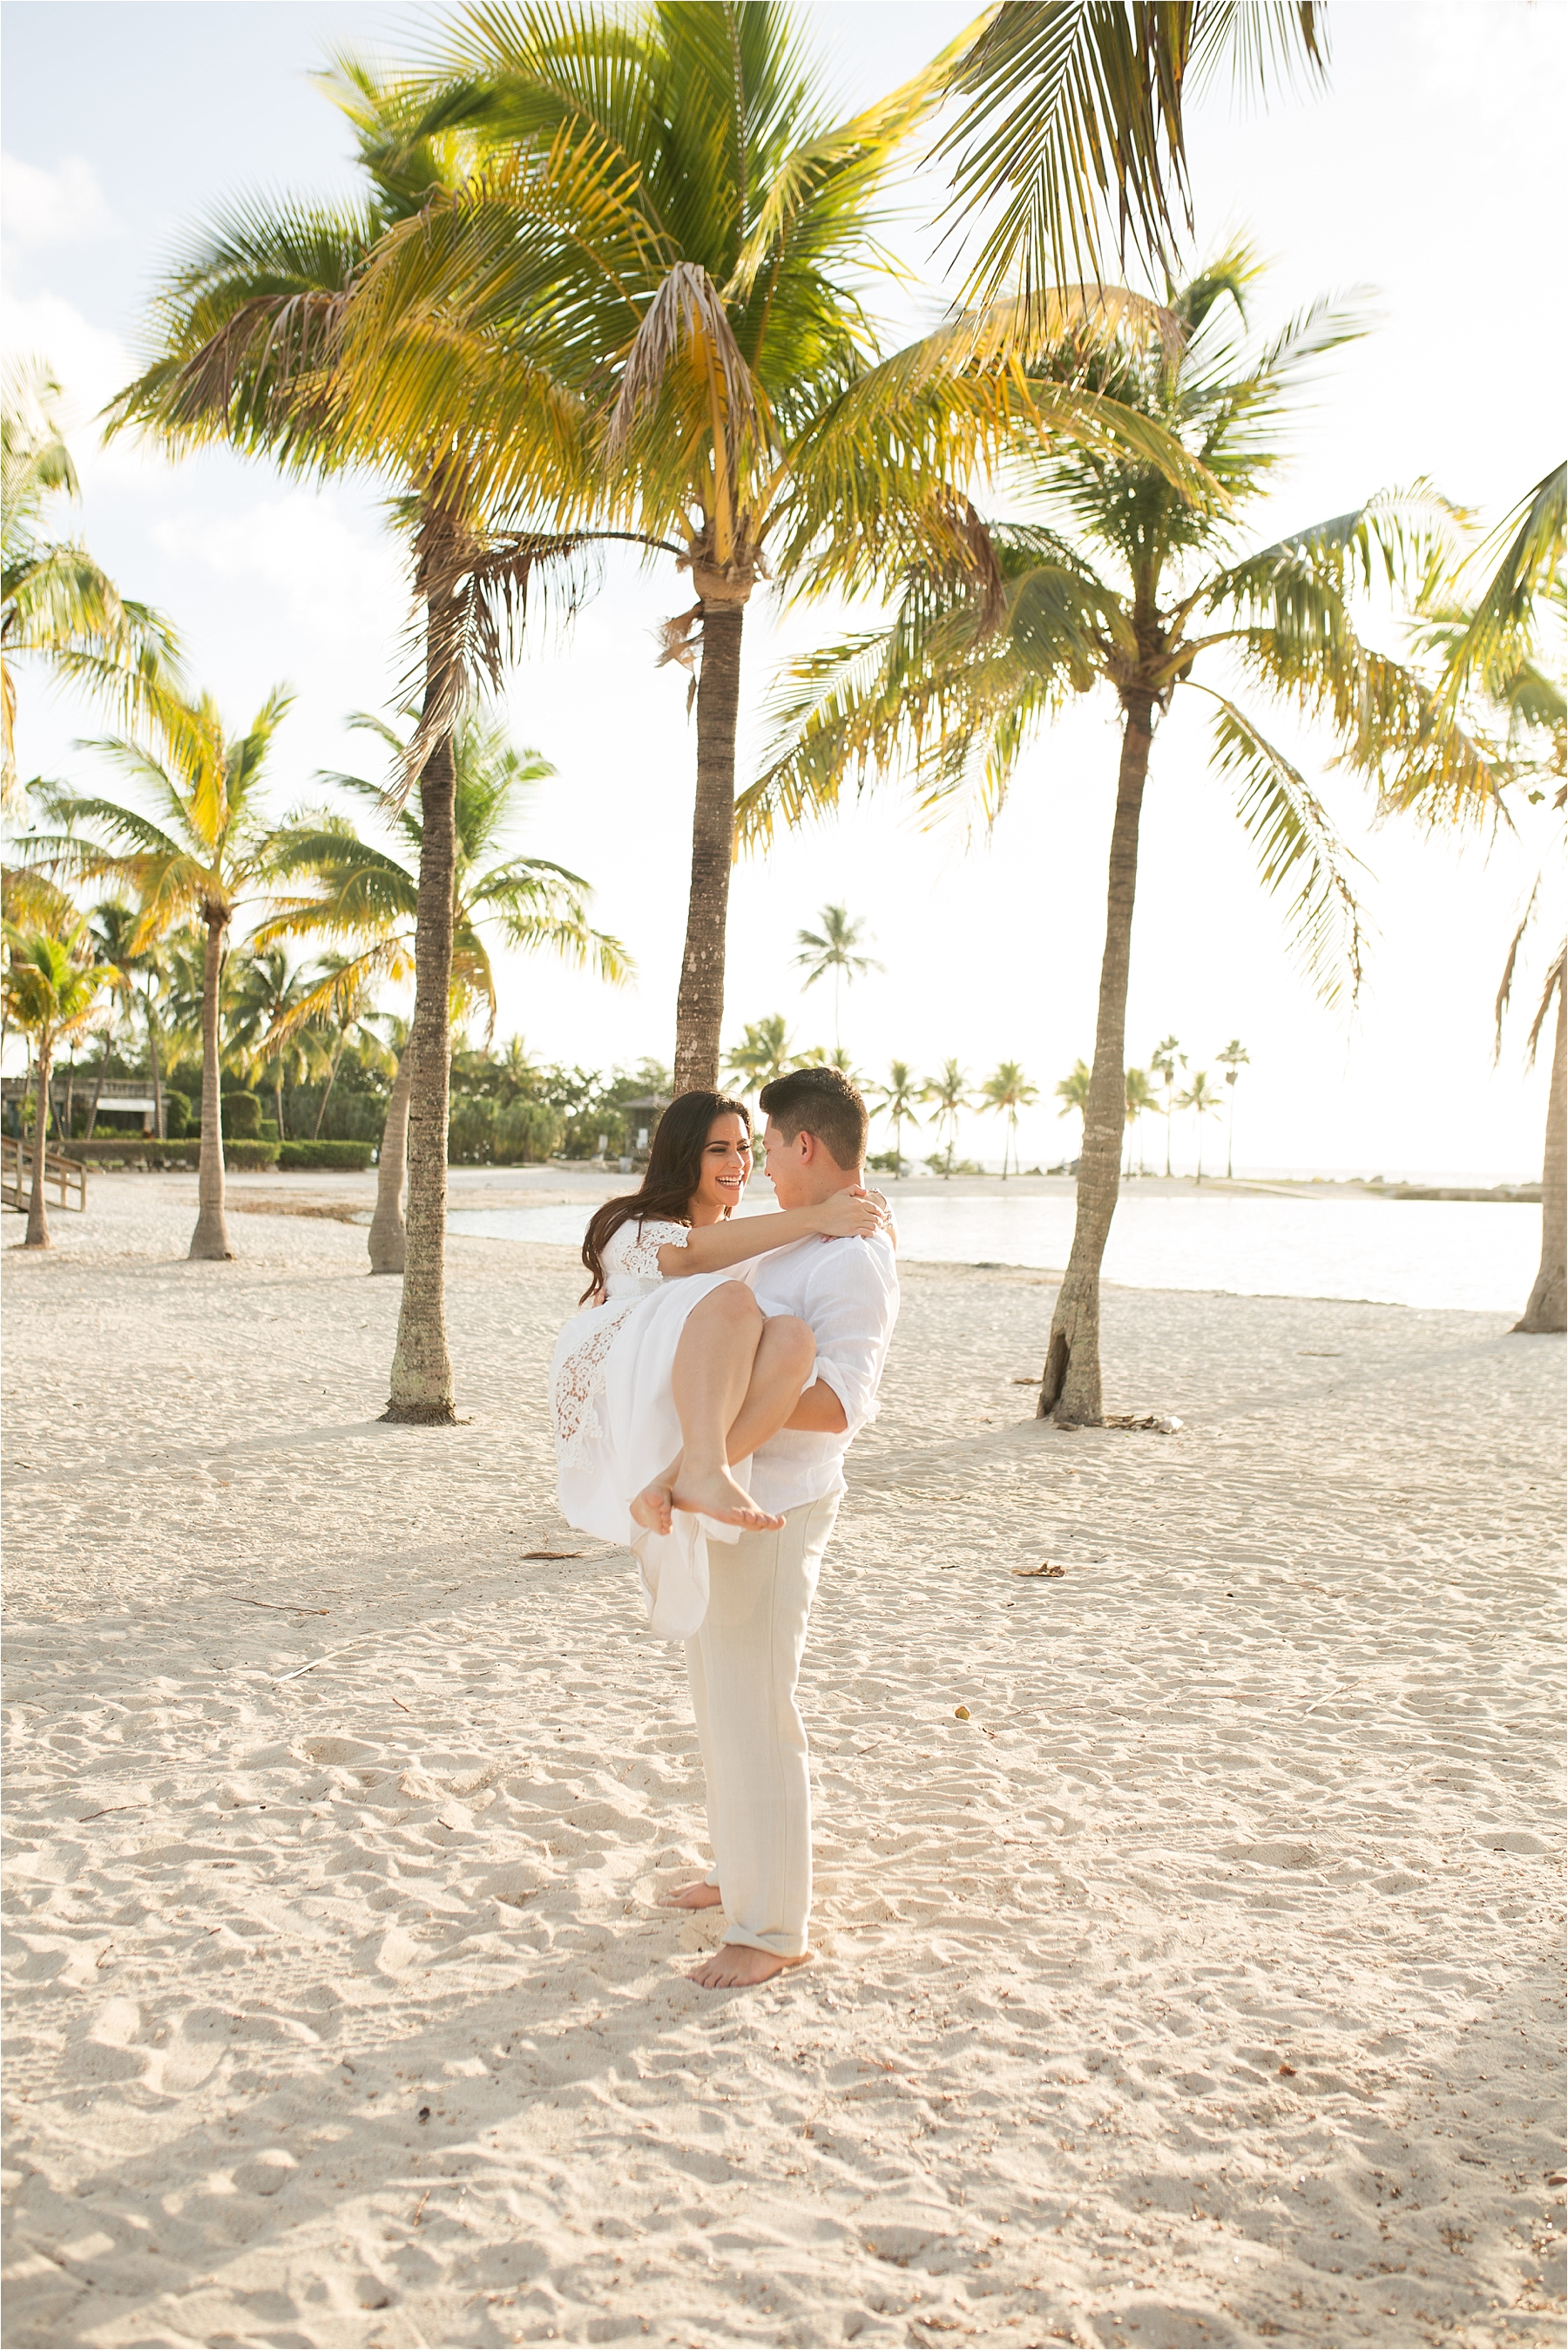 matheson hammock park engagements